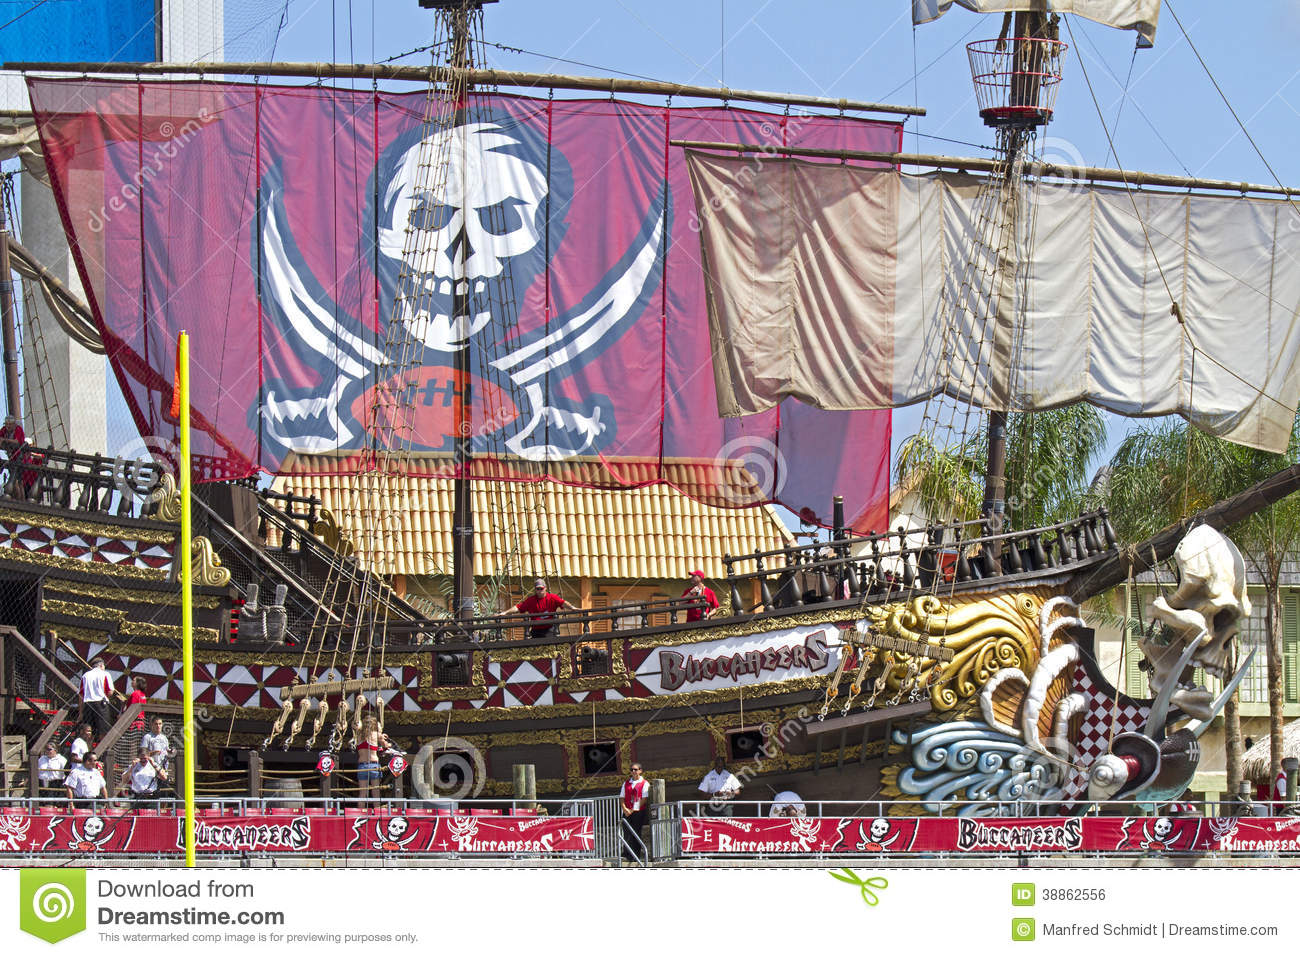 Buccaneers Pirate Photos Free Royalty Free Stock Photos From Dreamstime